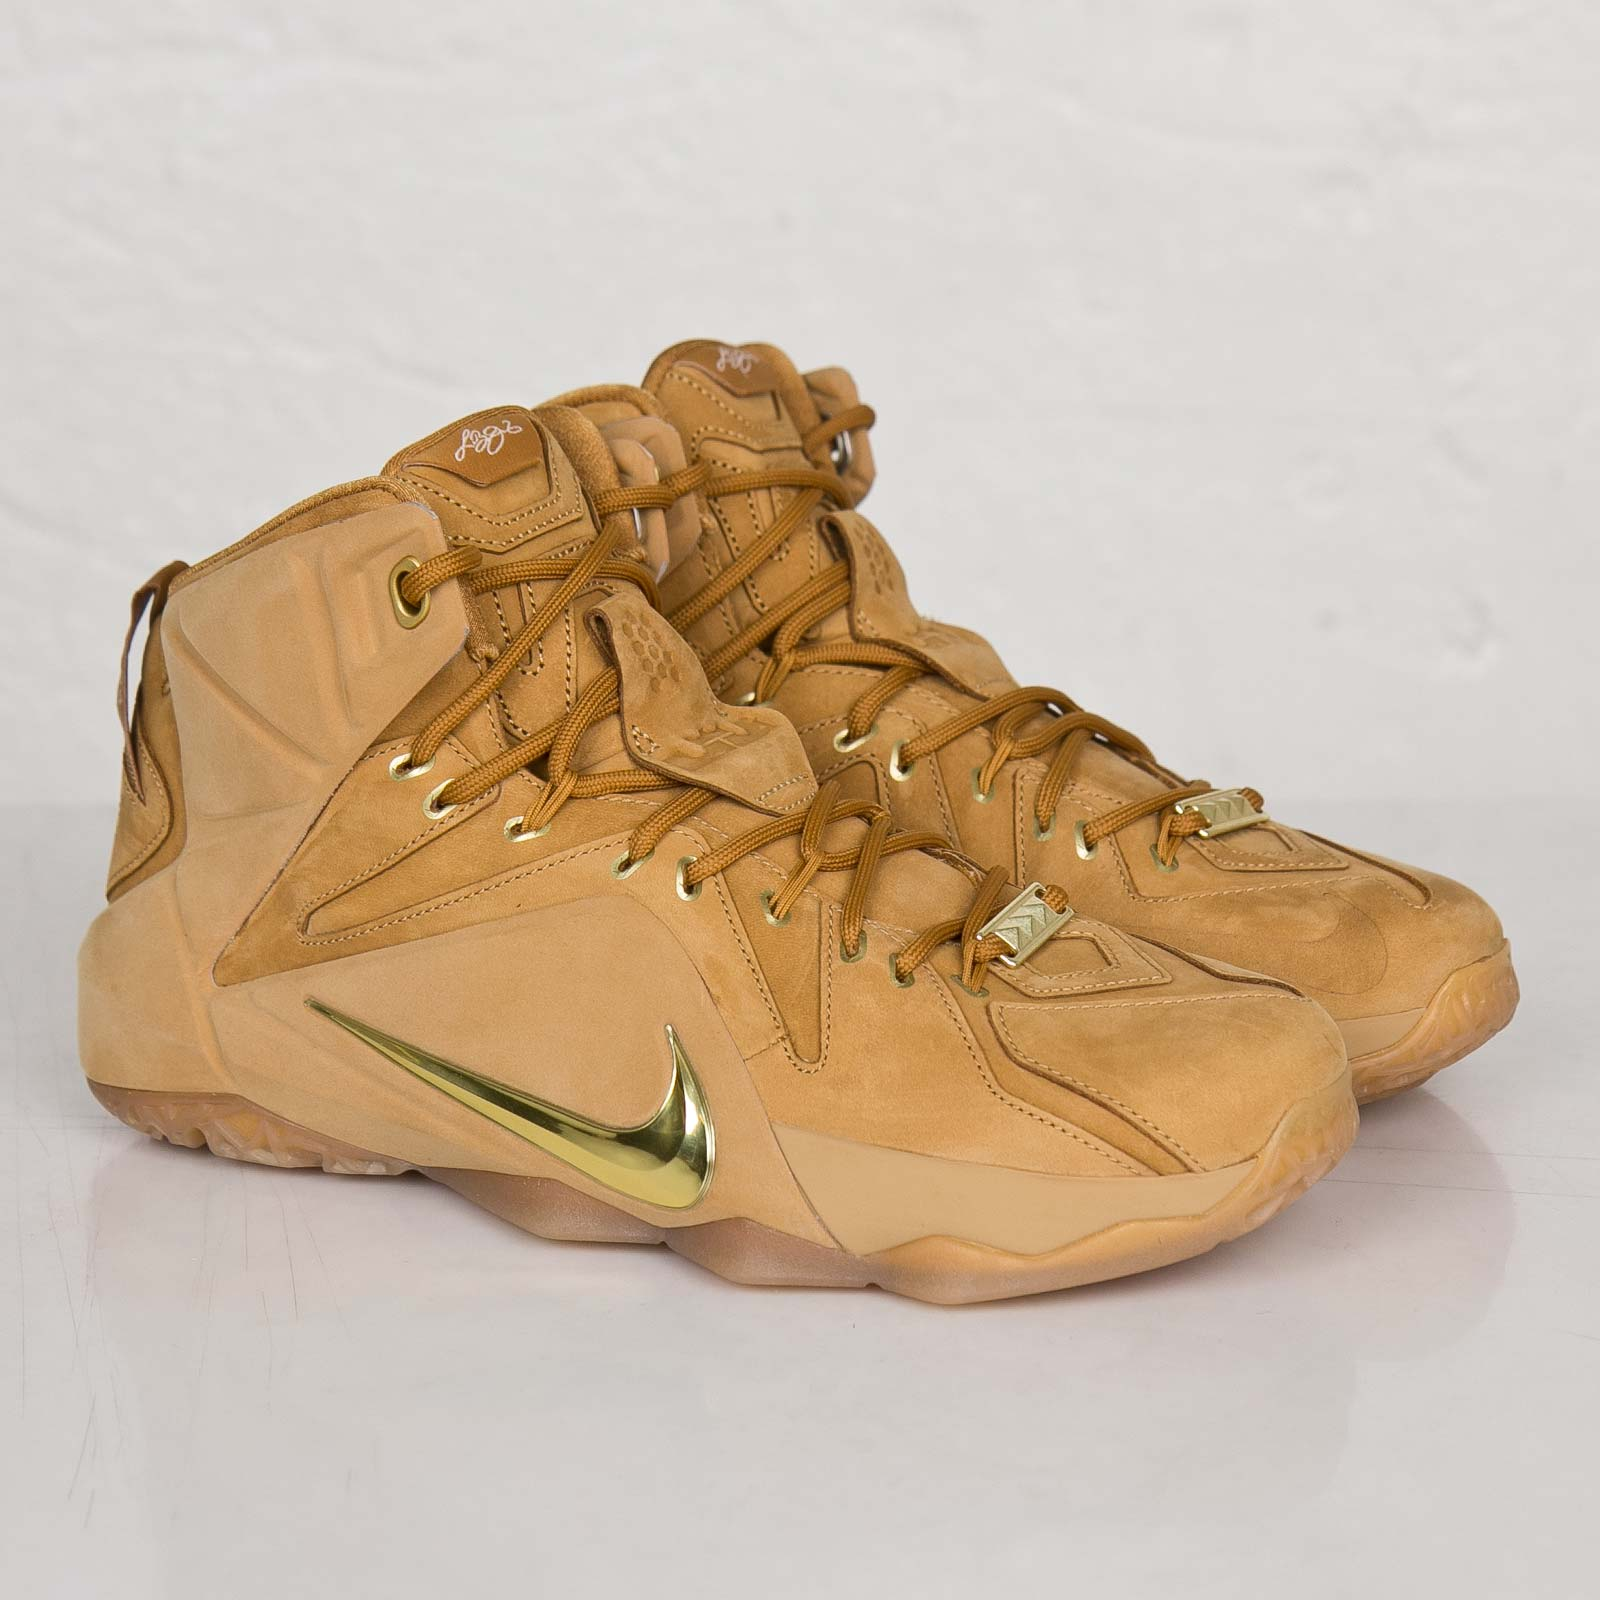 cheaper 12055 41e9c Nike Lebron XII EXT QS